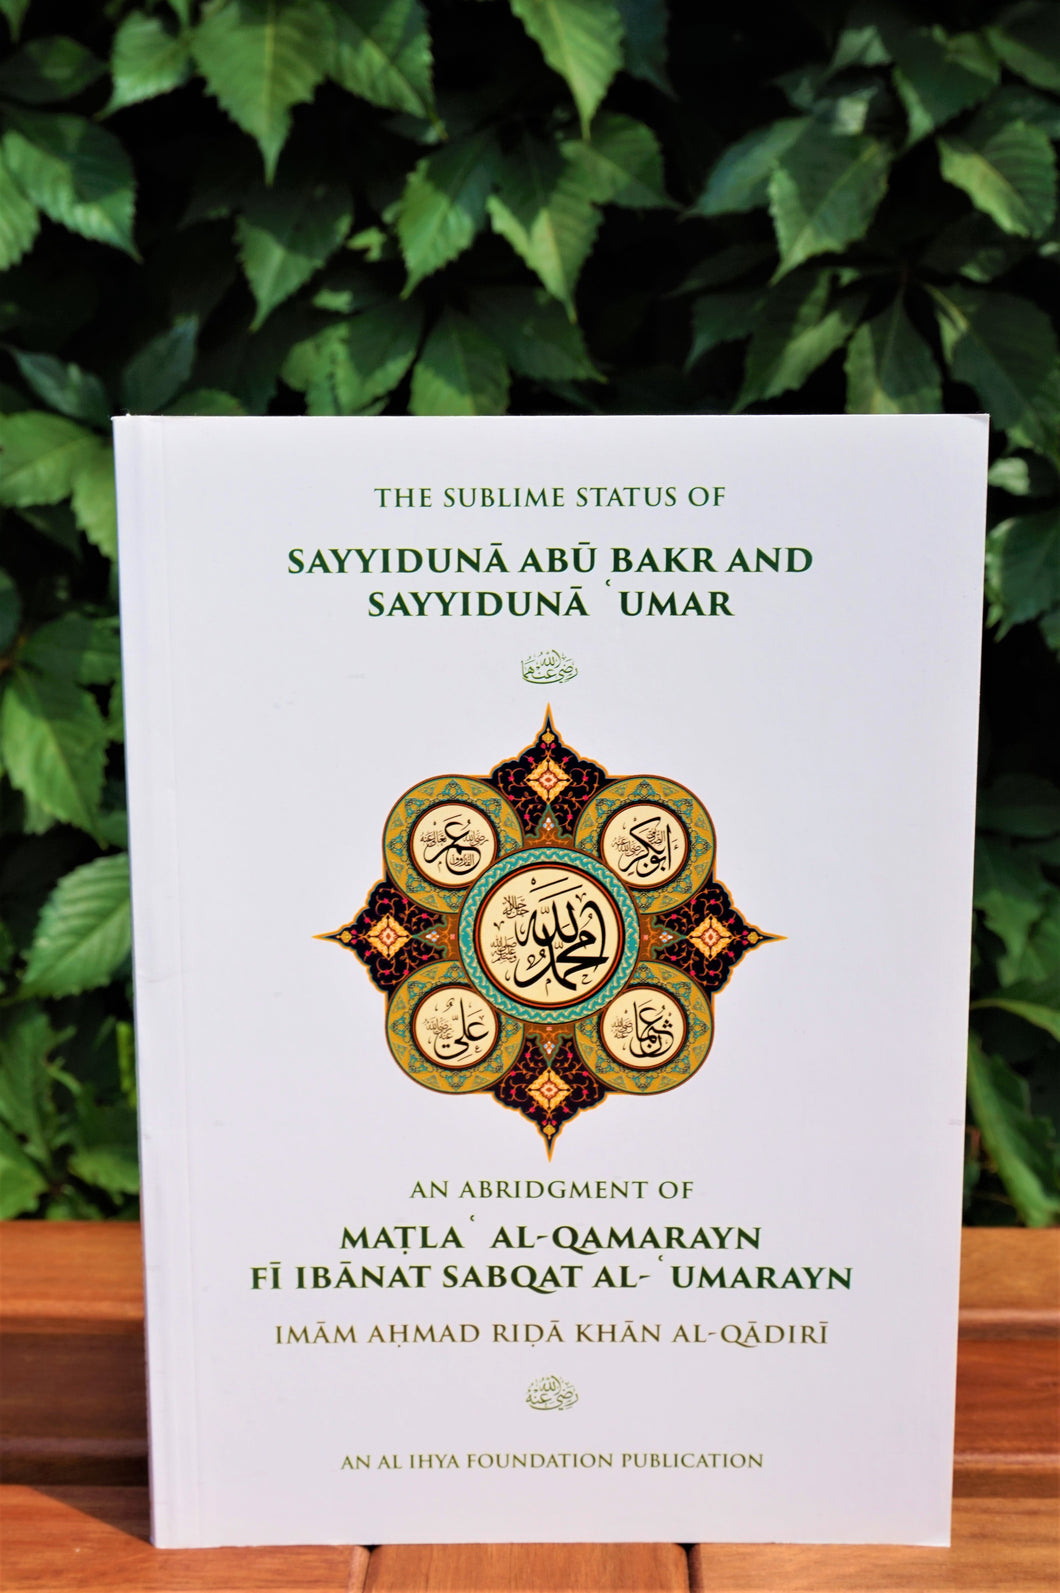 Front cover of the book The Sublime Status of Sayyiduna Abu Bakr and Sayyiduna Umar